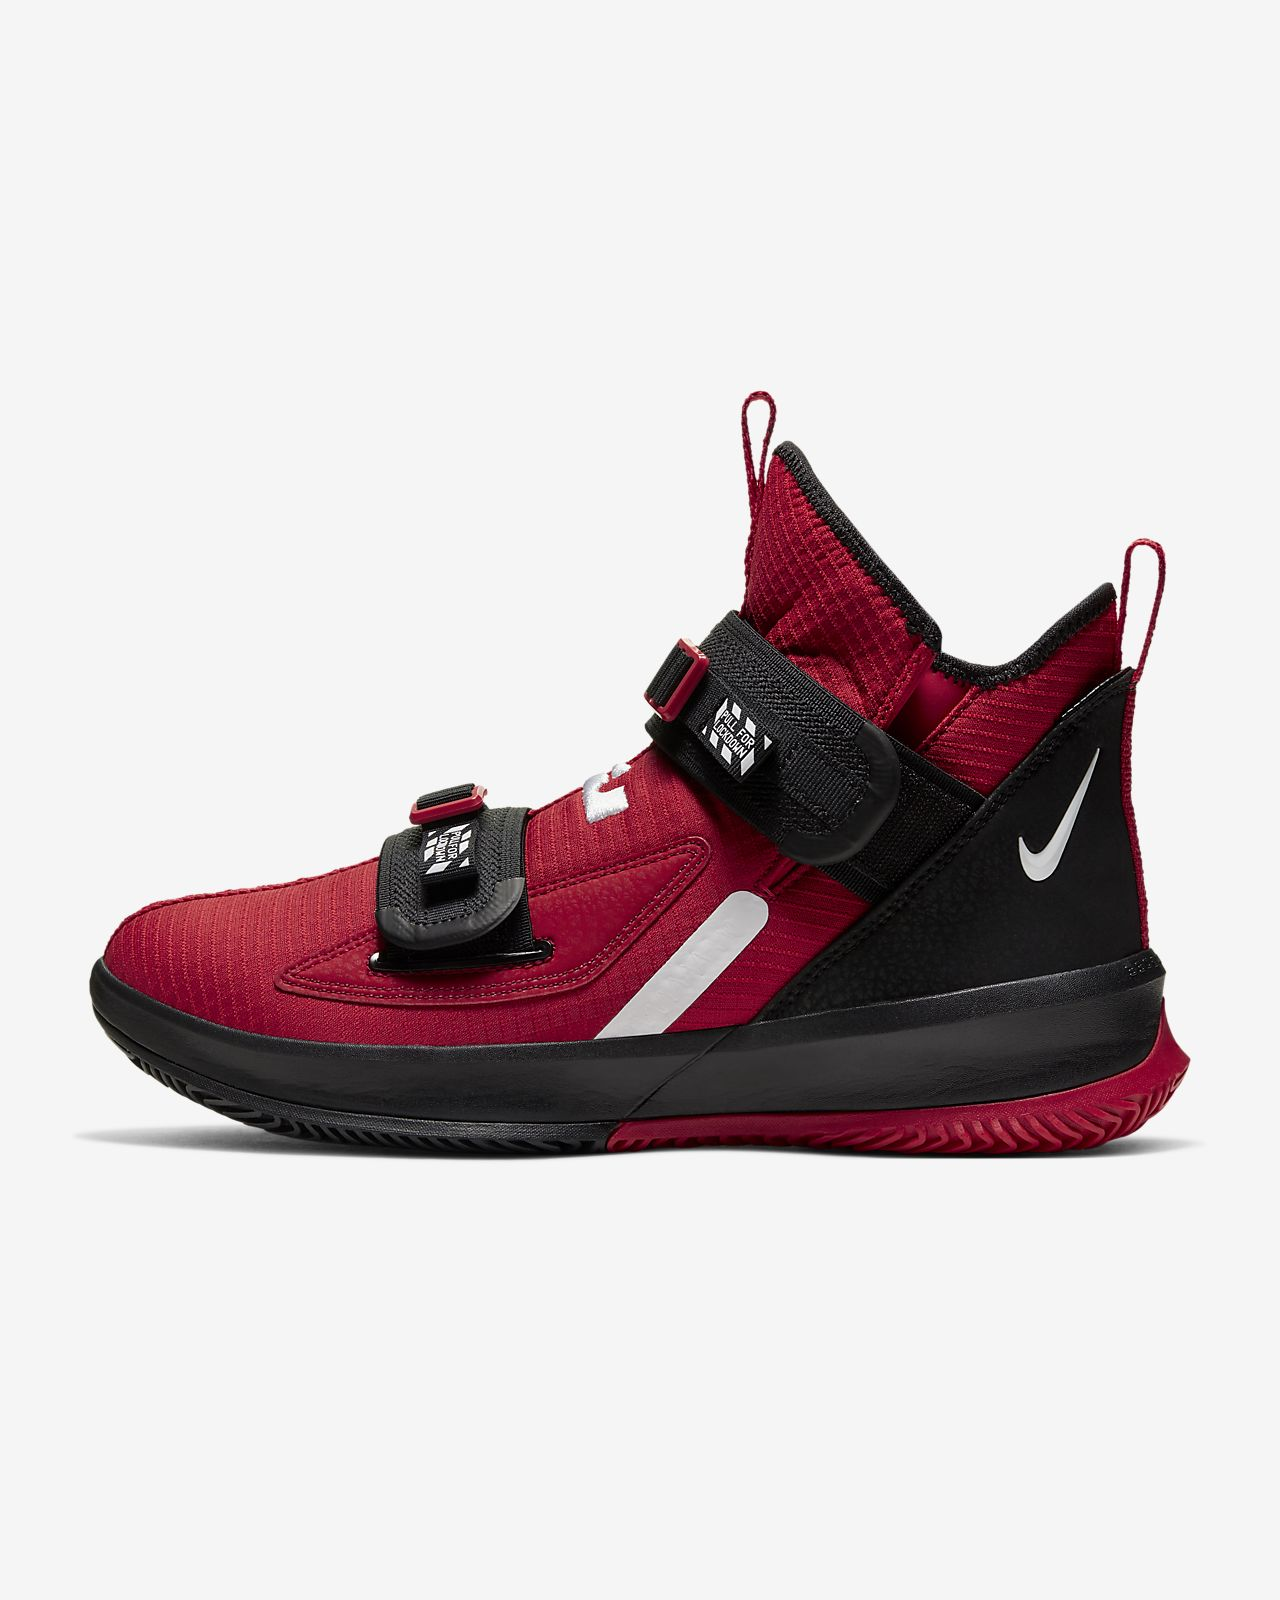 Red Nike Basketball Shoes   over 0 Red Nike Basketball Shoes